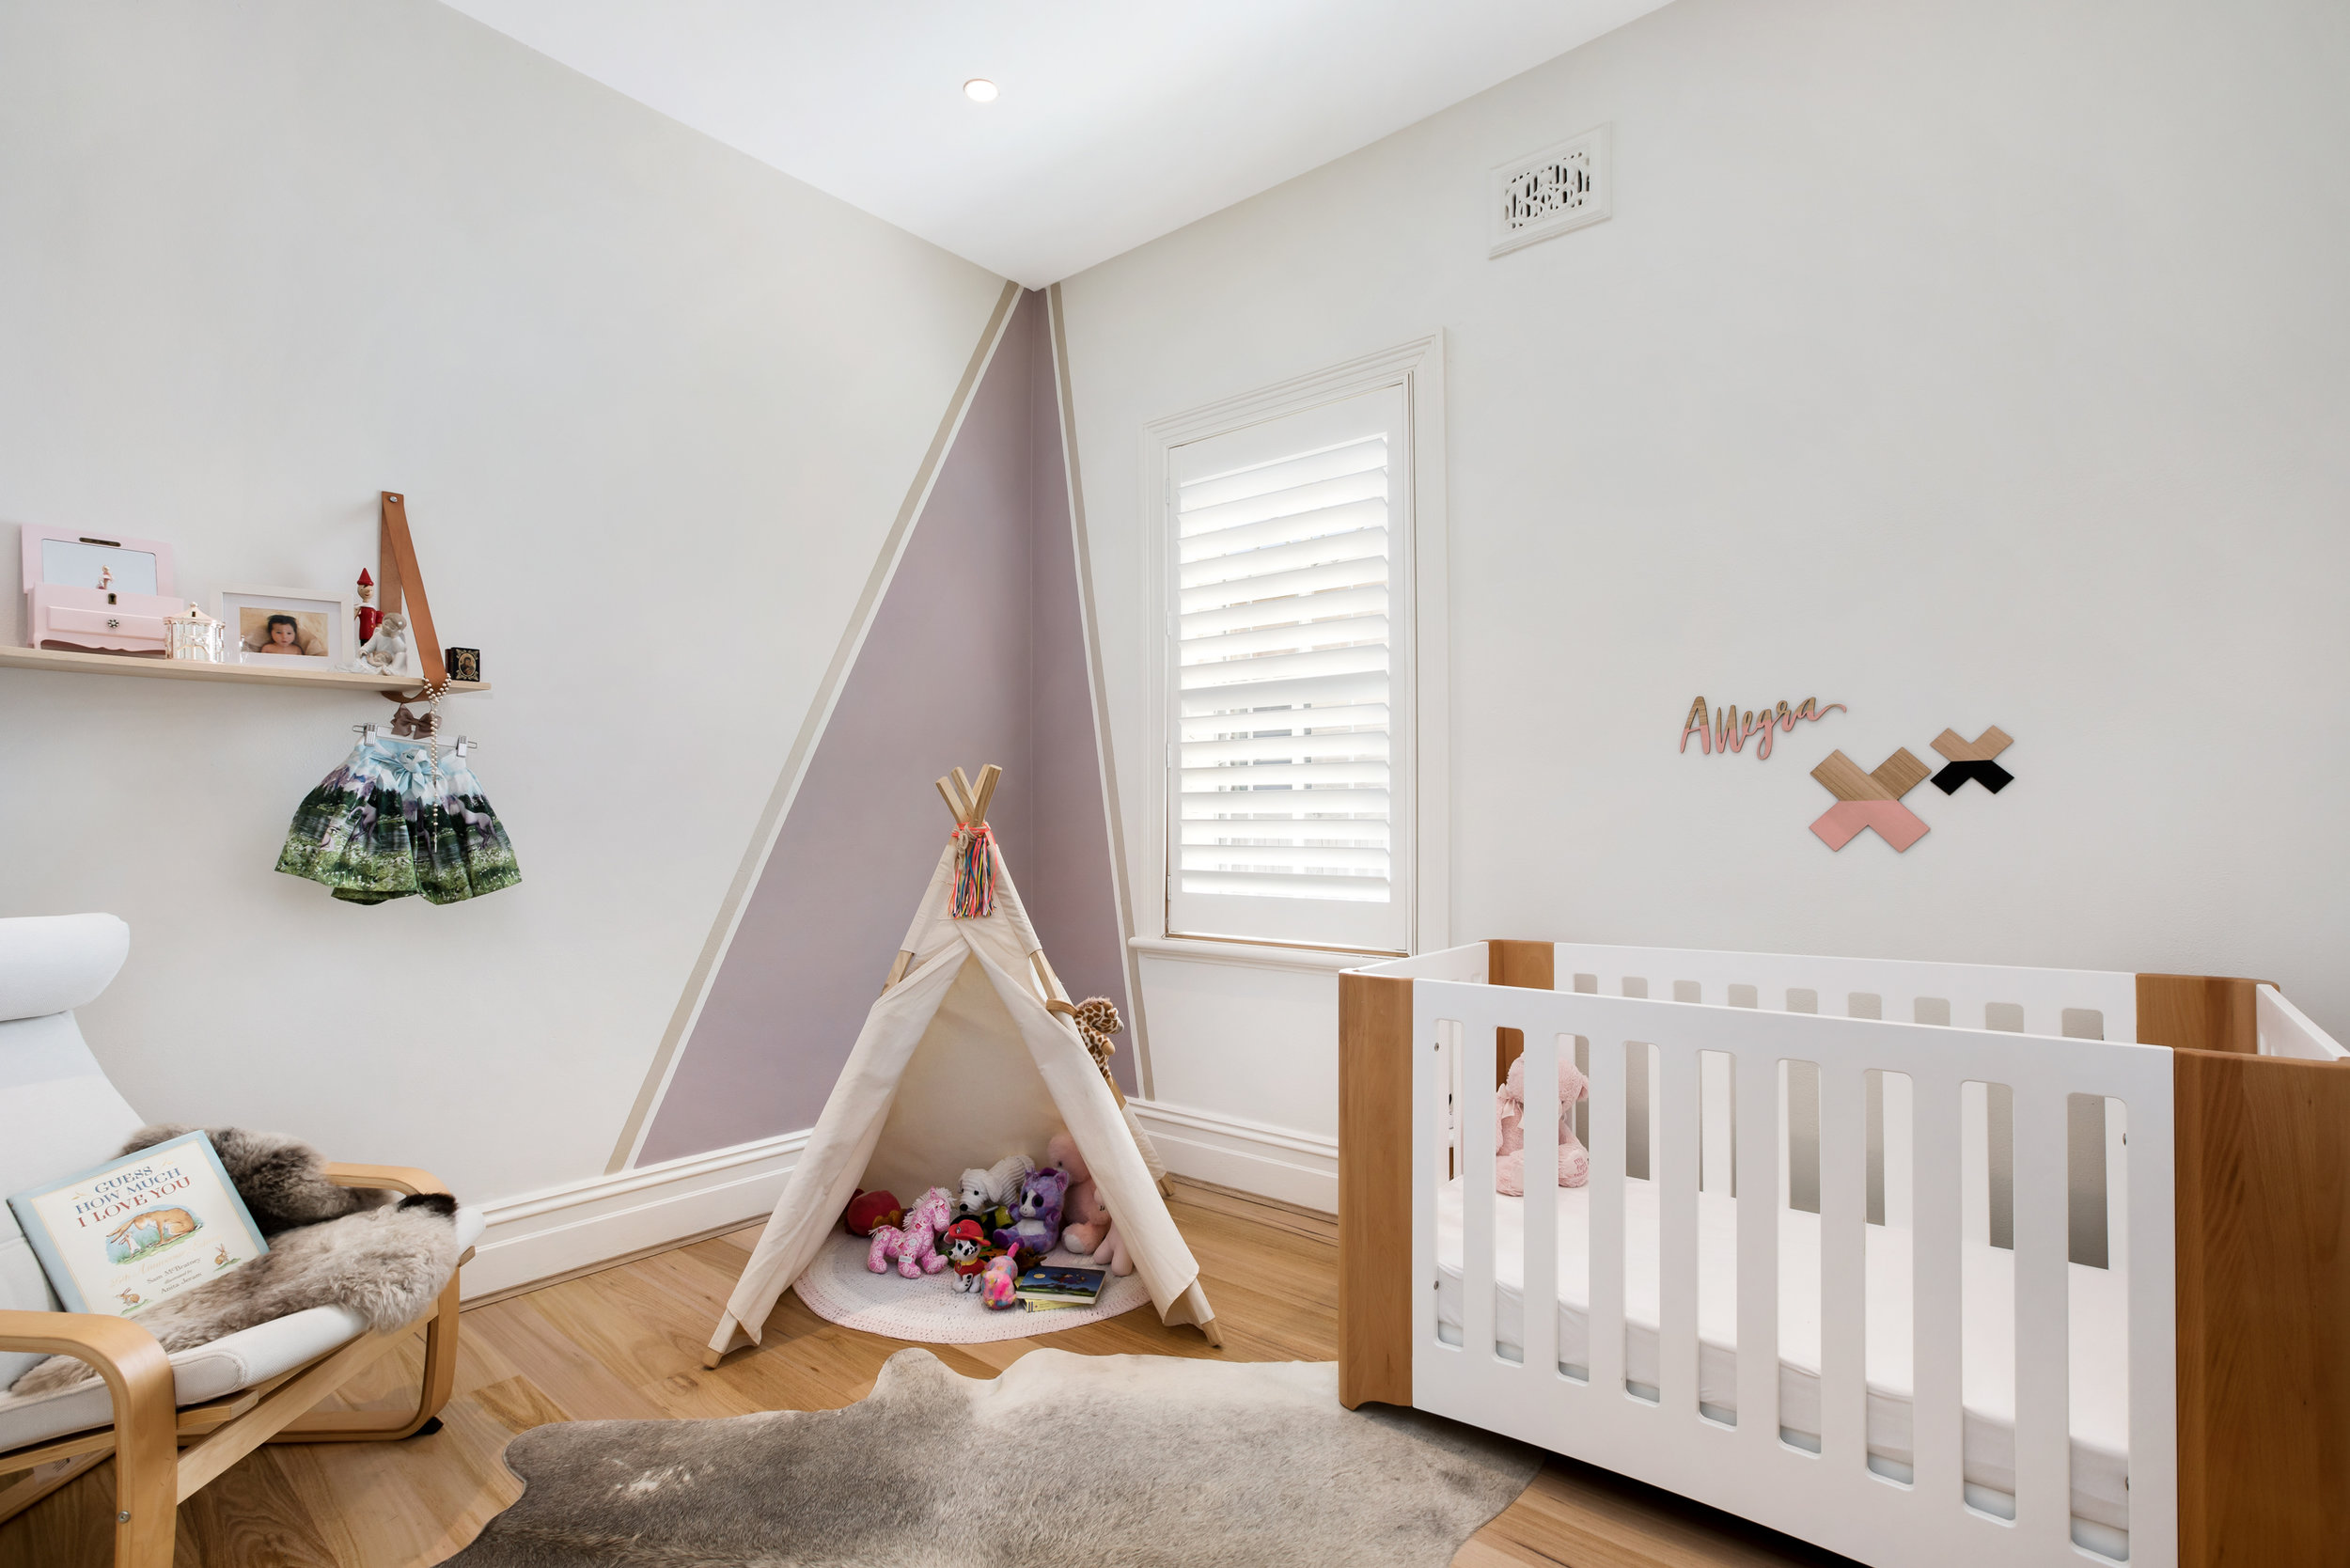 Douglas-St-8-Randwick-Kids room.jpg